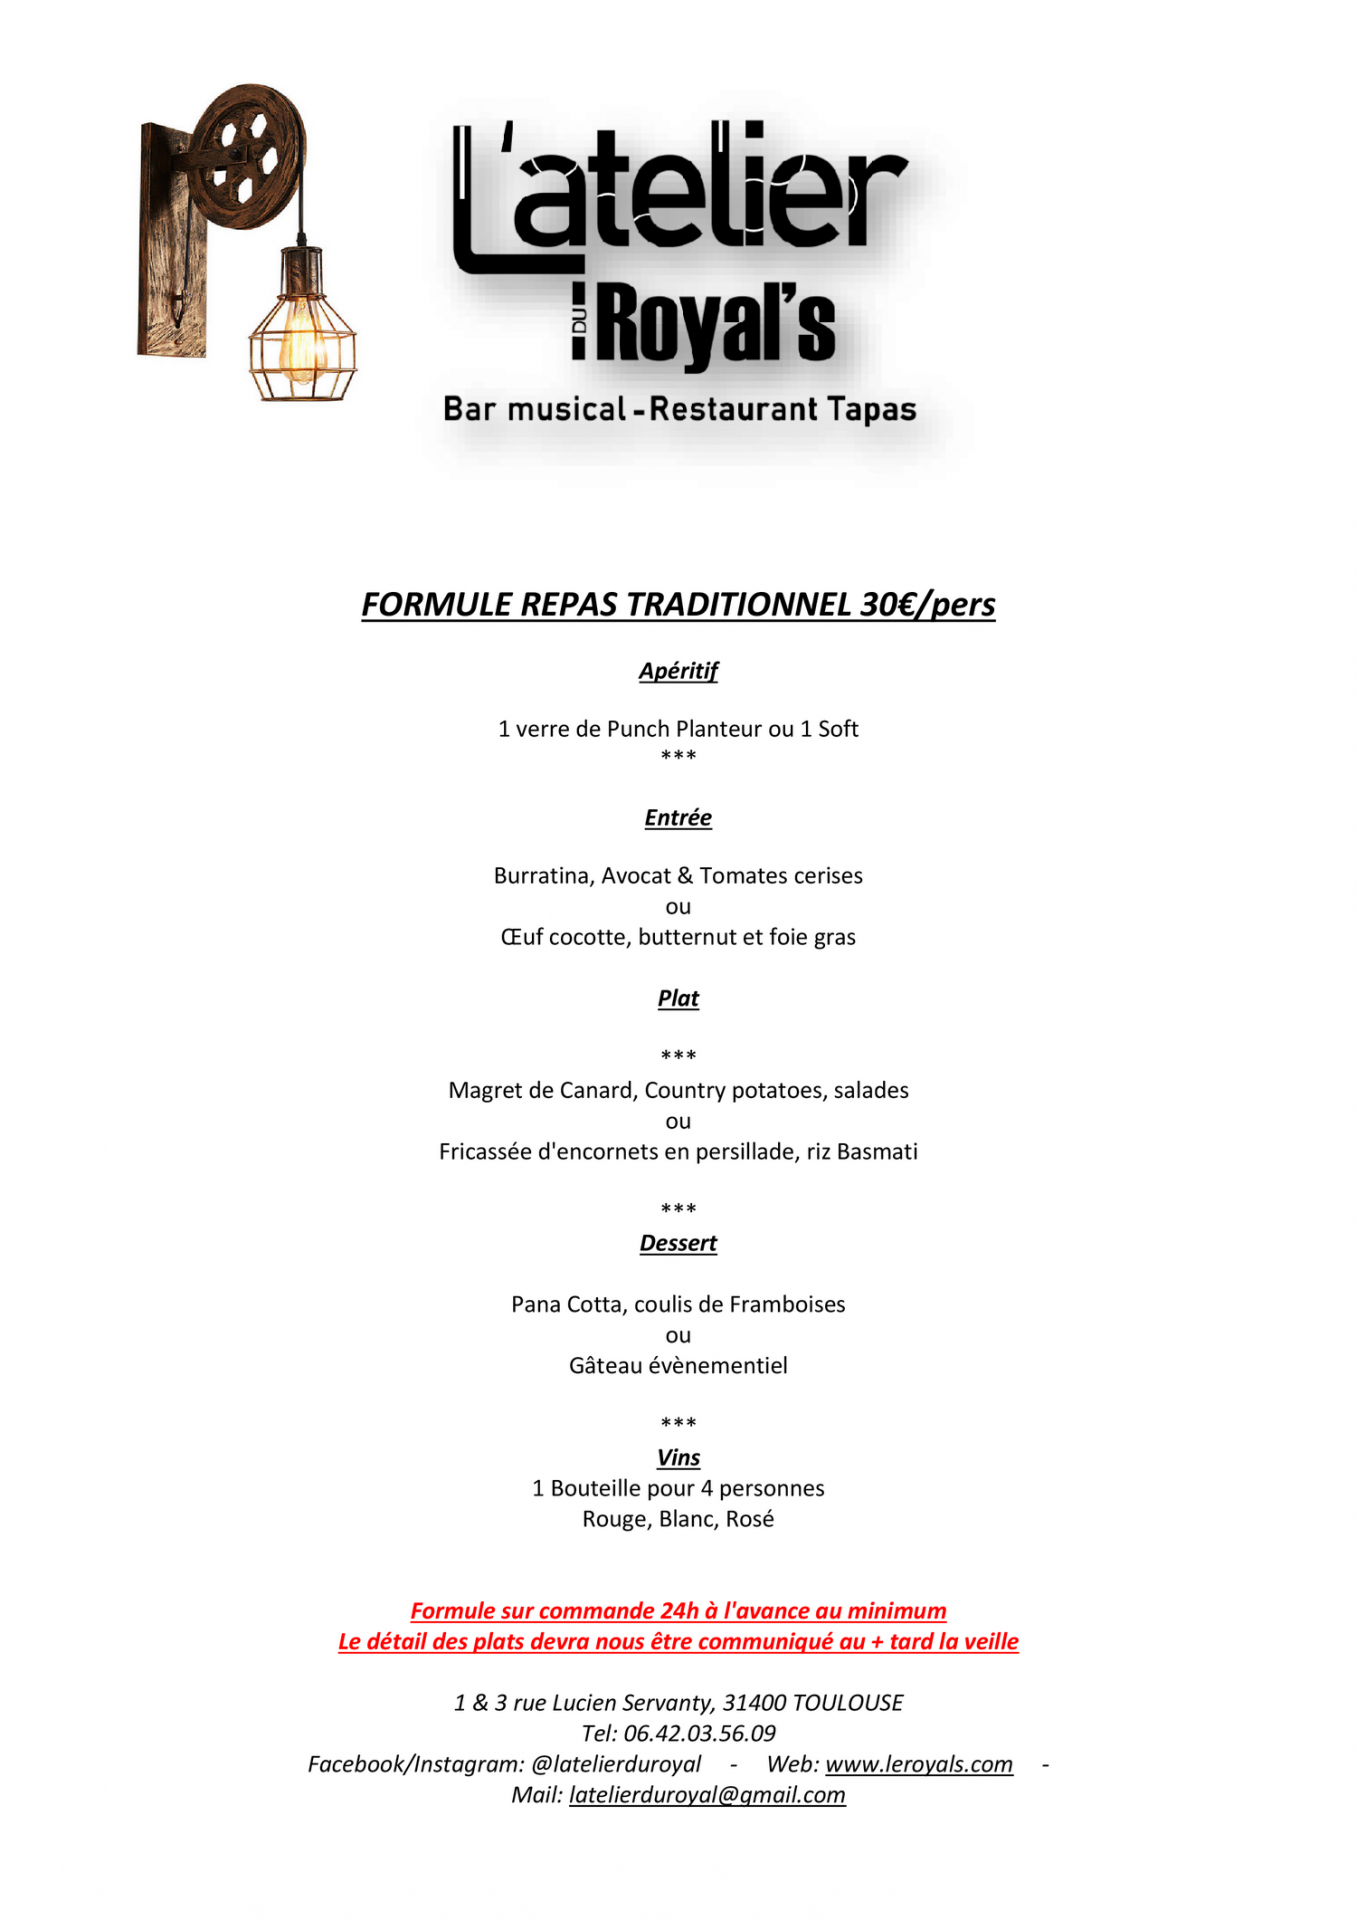 Formule repas traditionnel 30€/pers - L'atelier du Royal